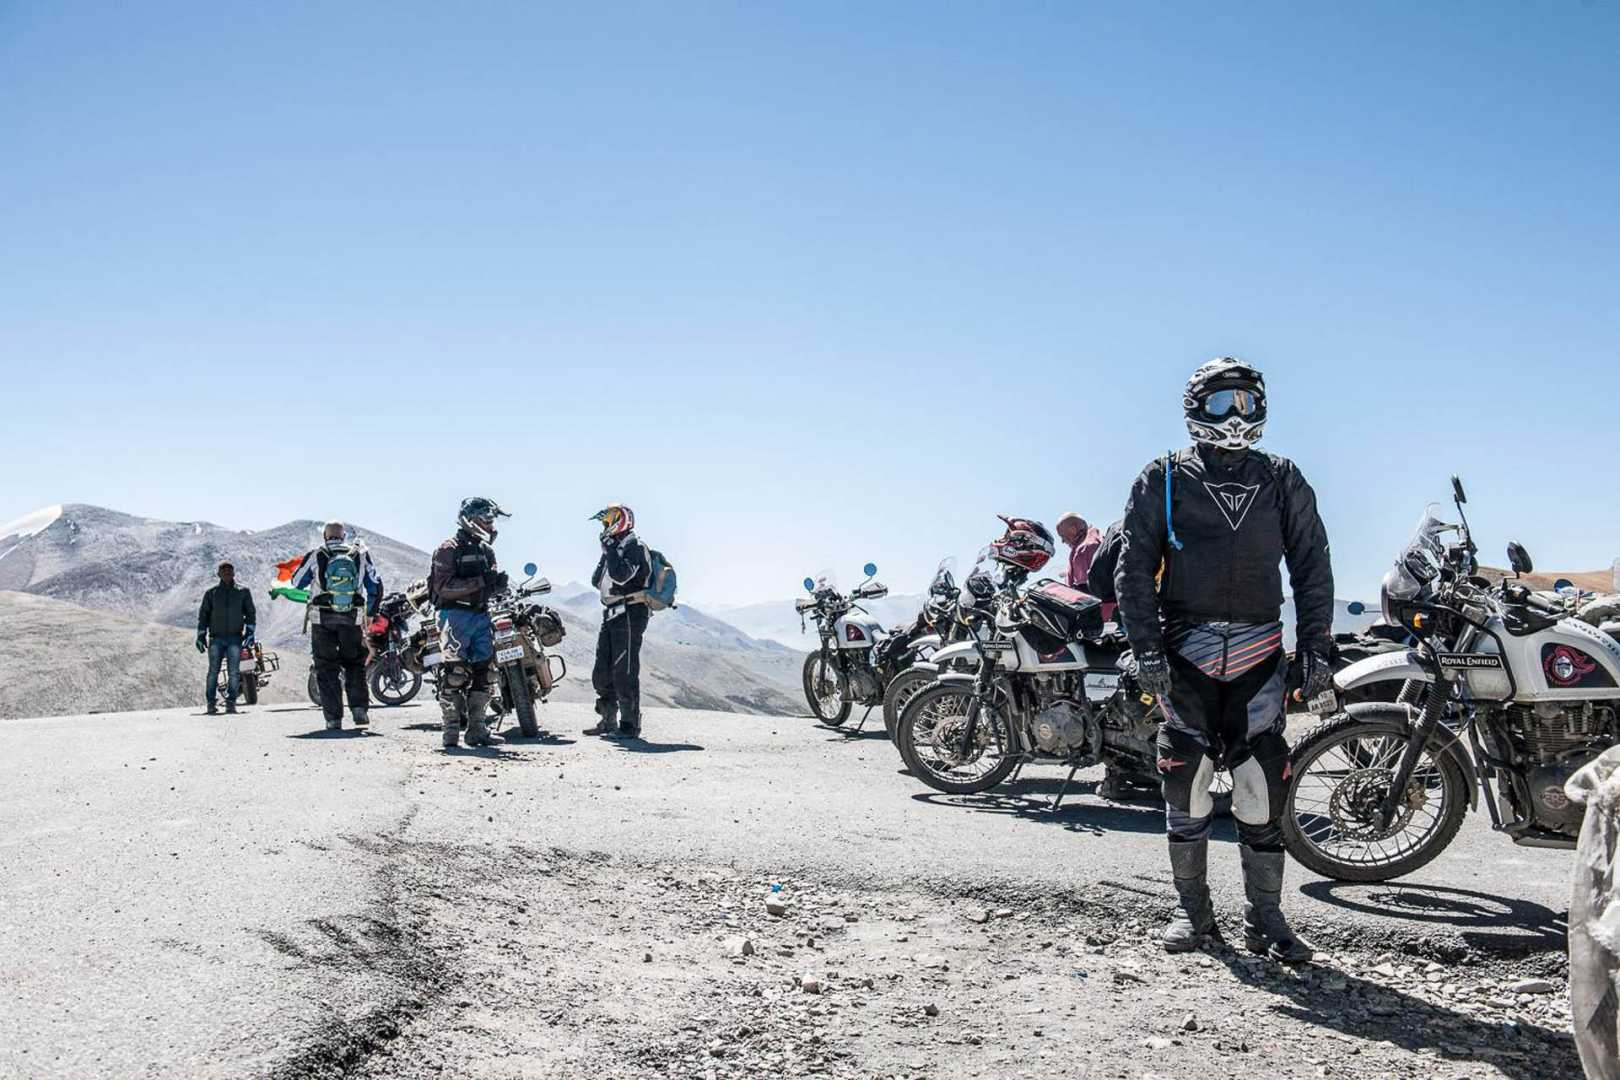 Motorcyclists overlooking the Himalayas